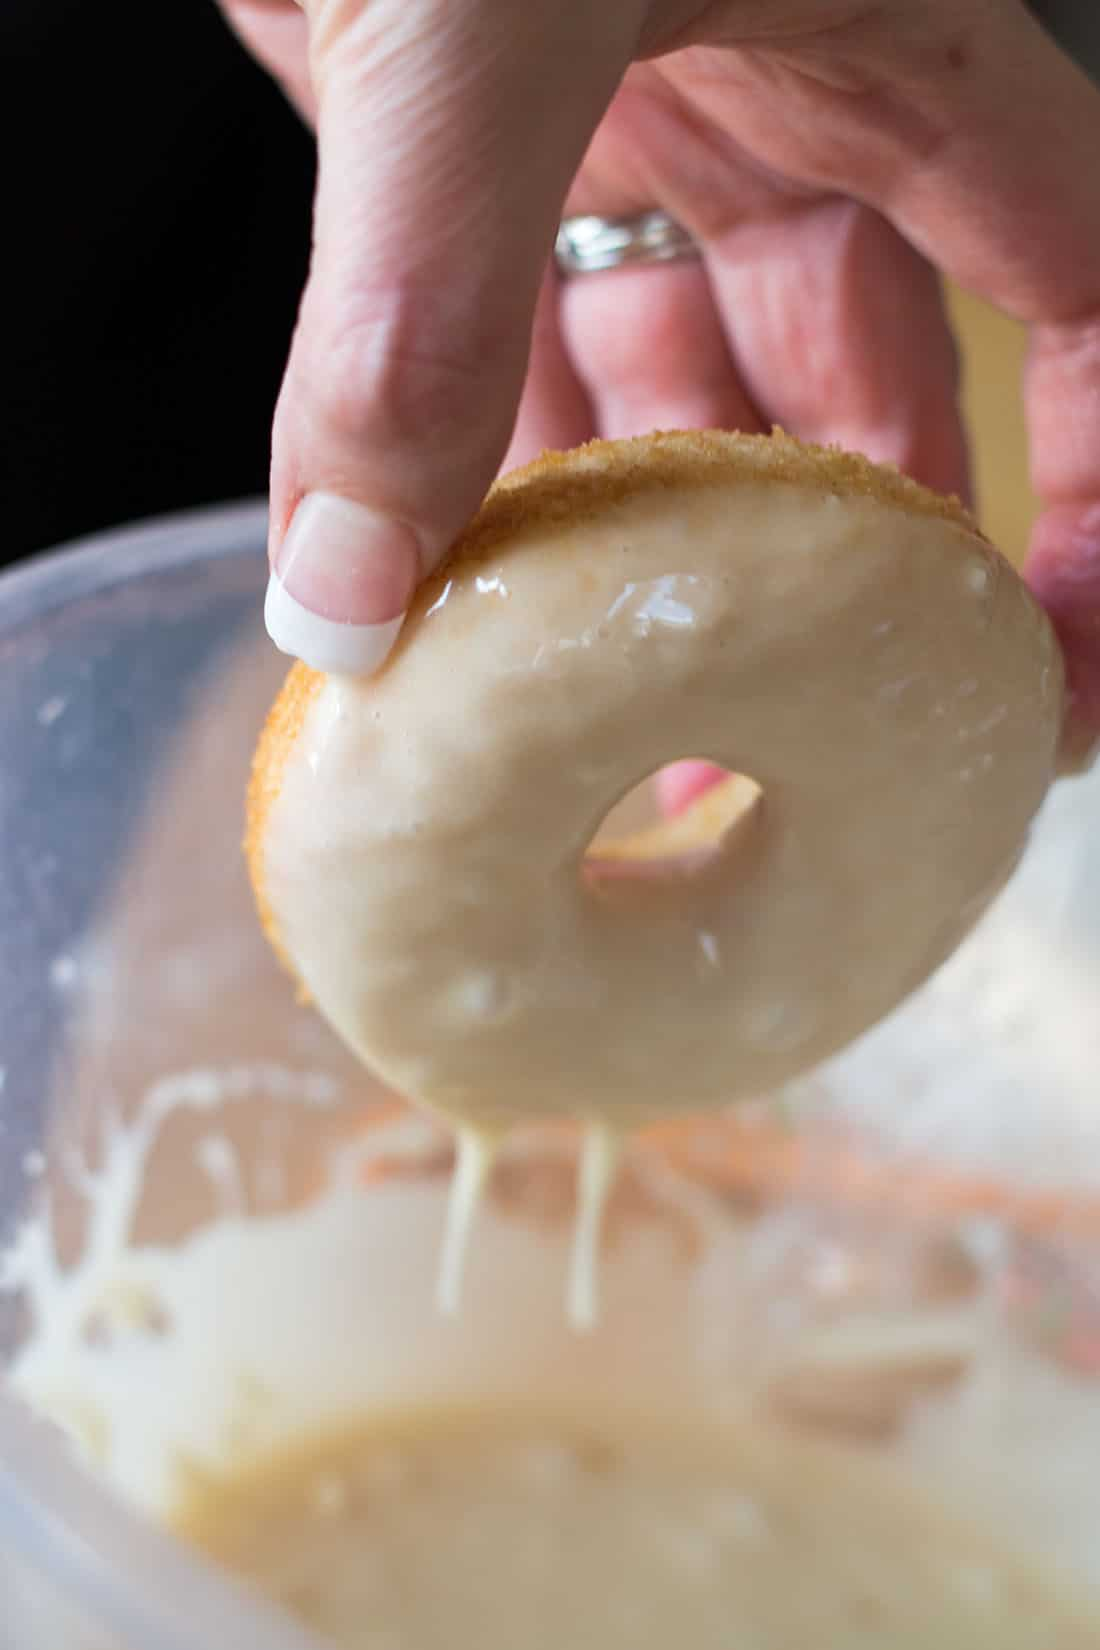 A doughnut being dipped in icing